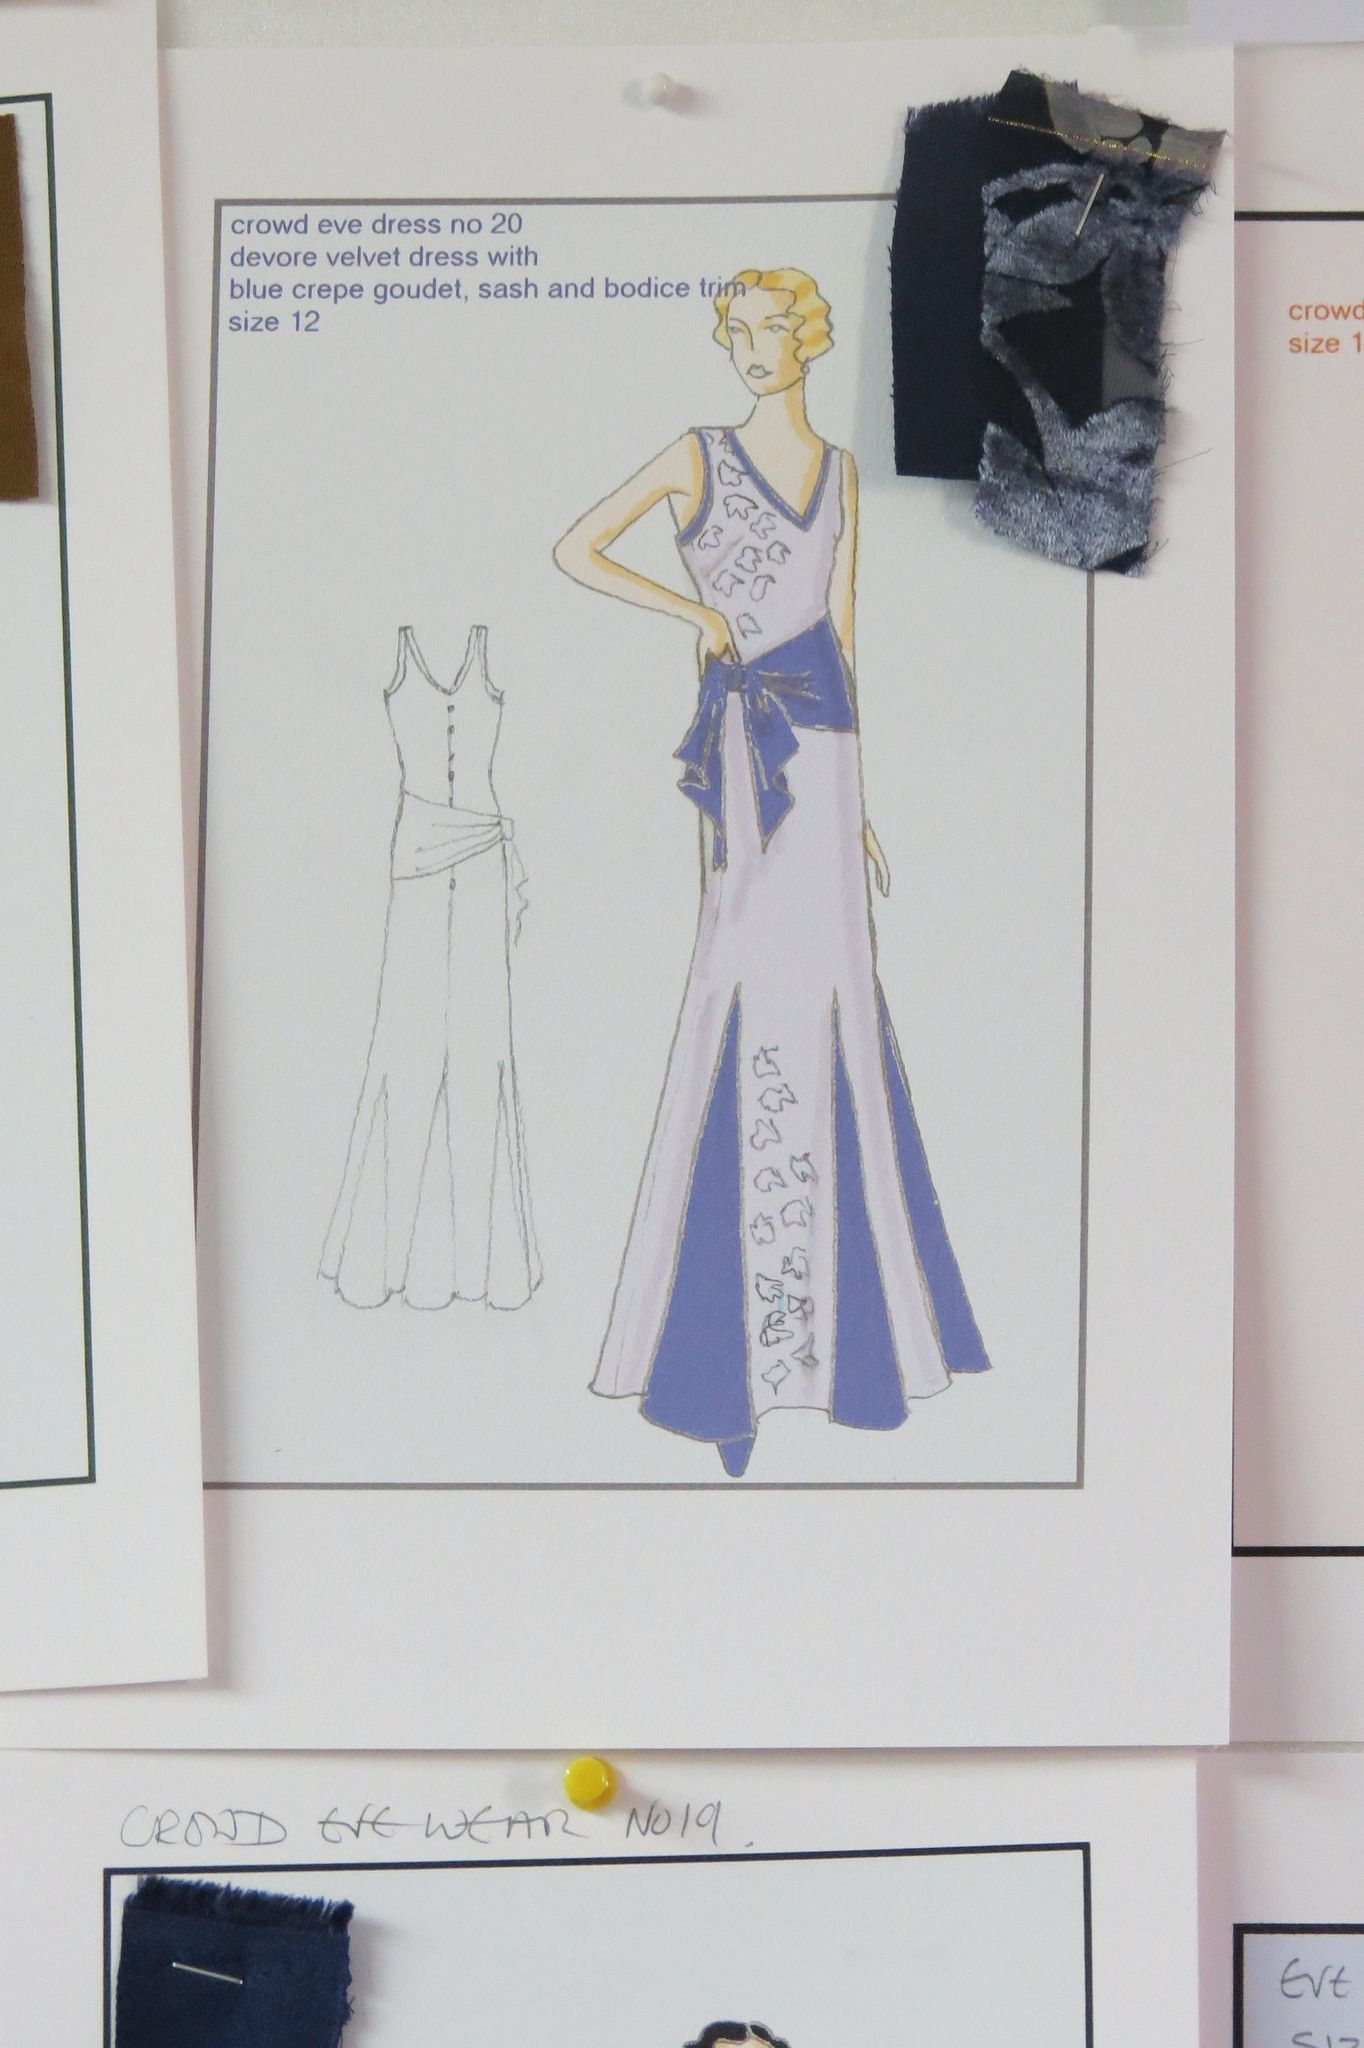 Fabric sample and evening dress sketch from Indian Summers Costume Designer Nic Ede | Courtesy of Rebecca Eaton for MASTERPIECE